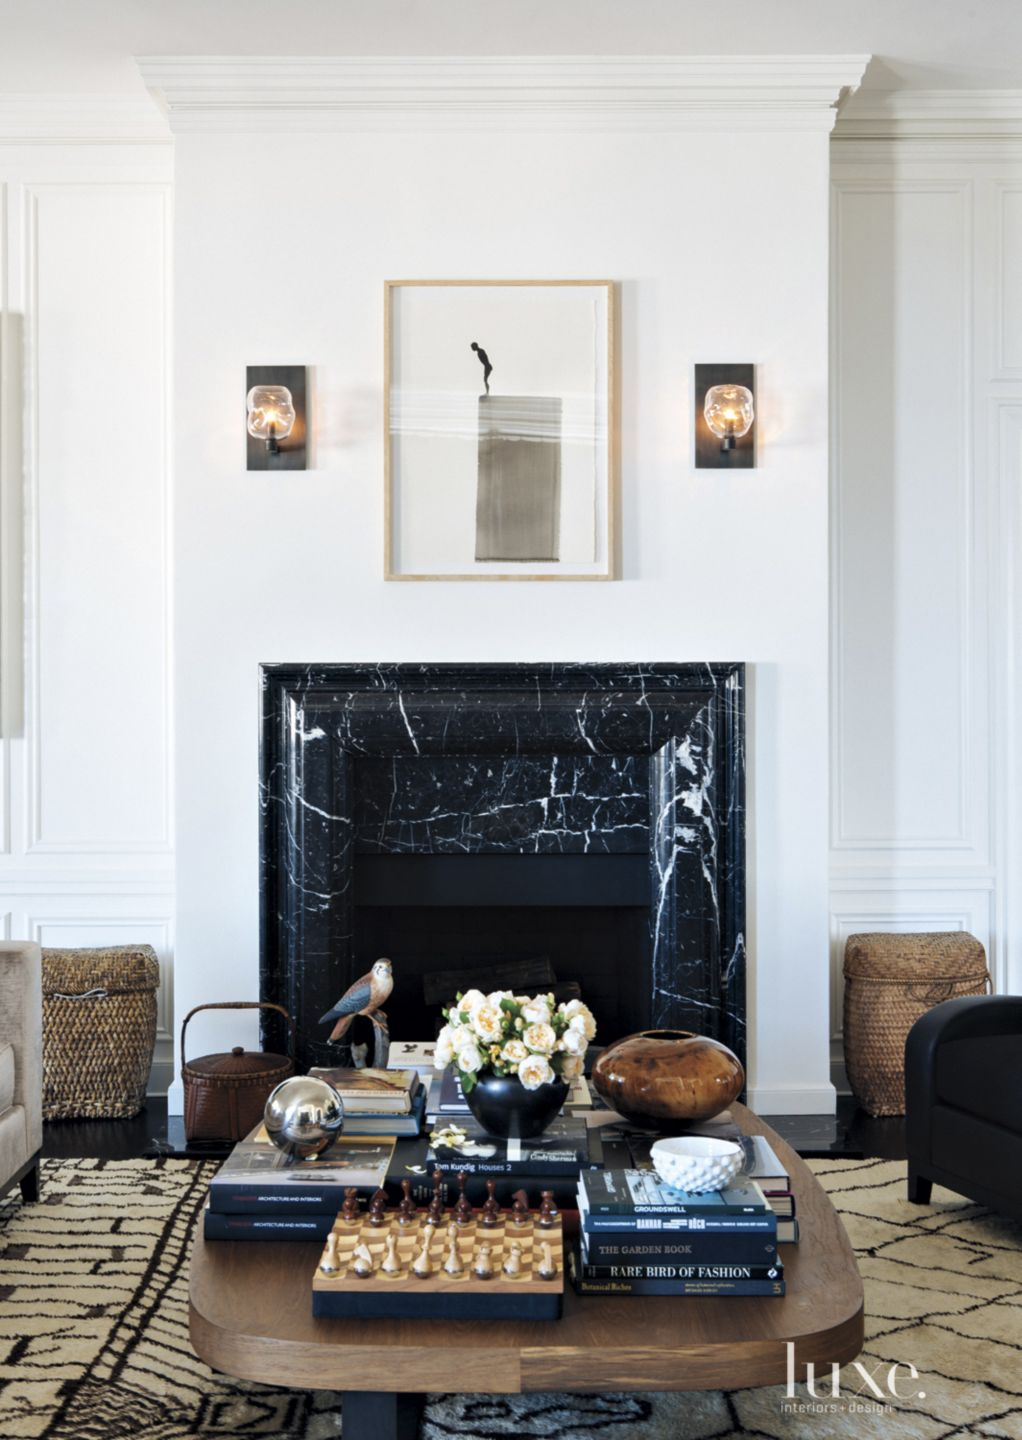 Transitional White Living Room With Black Marble Fireplace Luxe Interiors Design